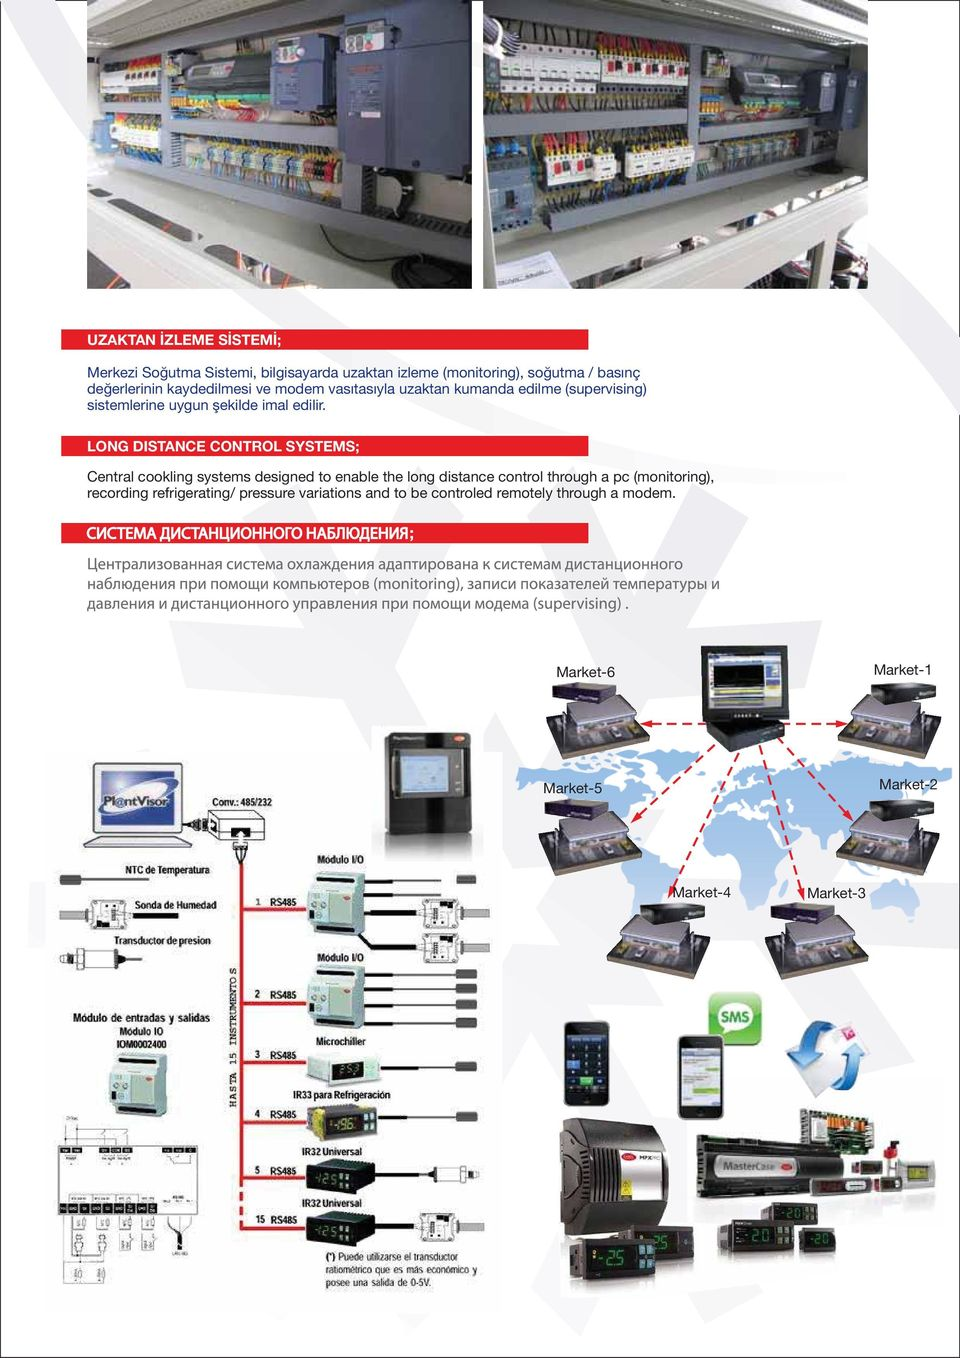 LONG DISTANCE CONTROL SYSTEMS; Central cookling systems designed to enable the long distance control through a pc